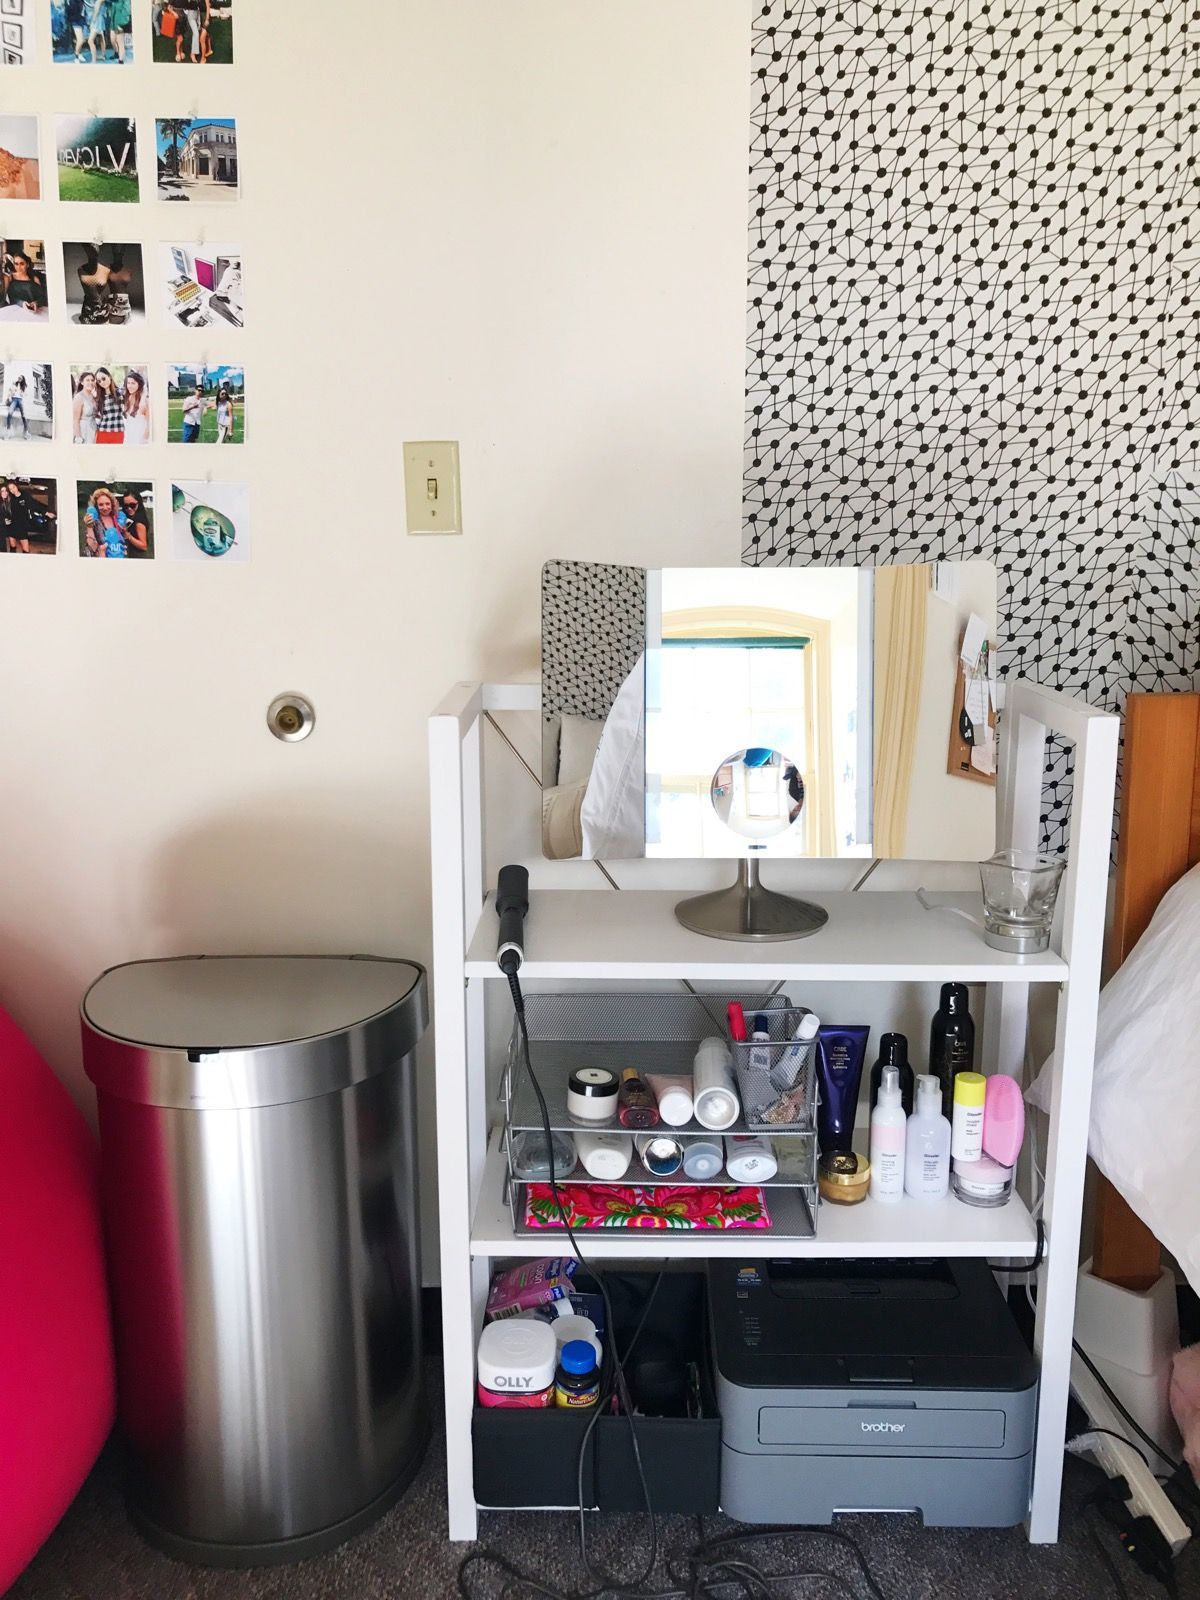 boarding school dorm room room interior inspiration interior rh pinterest com